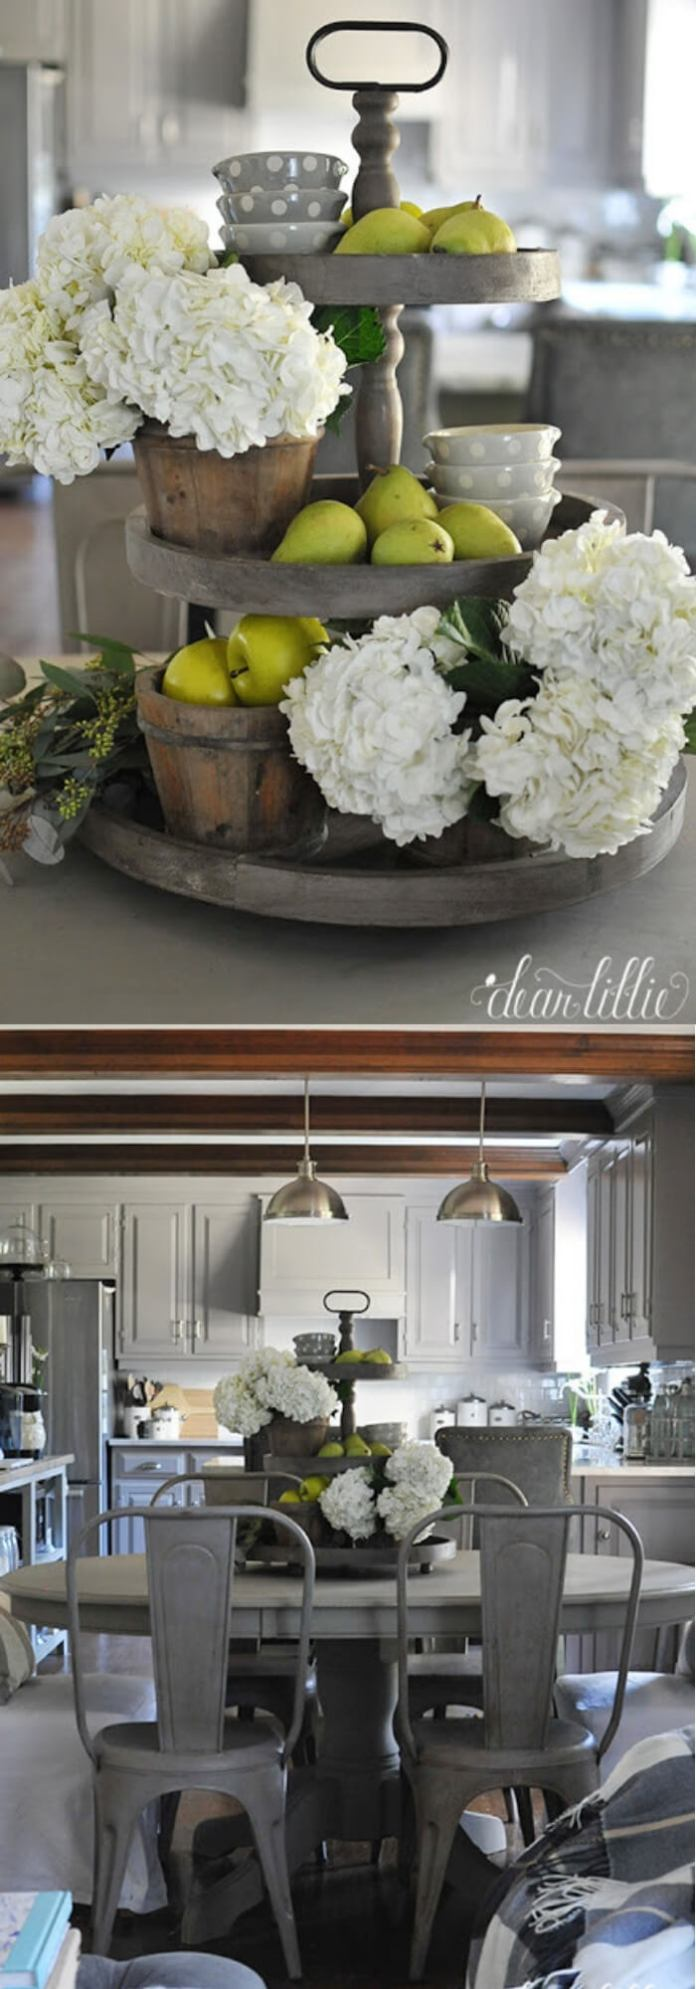 Bring three tiered stand back onto kitchen table with the cute little polka dot jars | Inspiring Farmhouse Kitchen Design & Decor Ideas